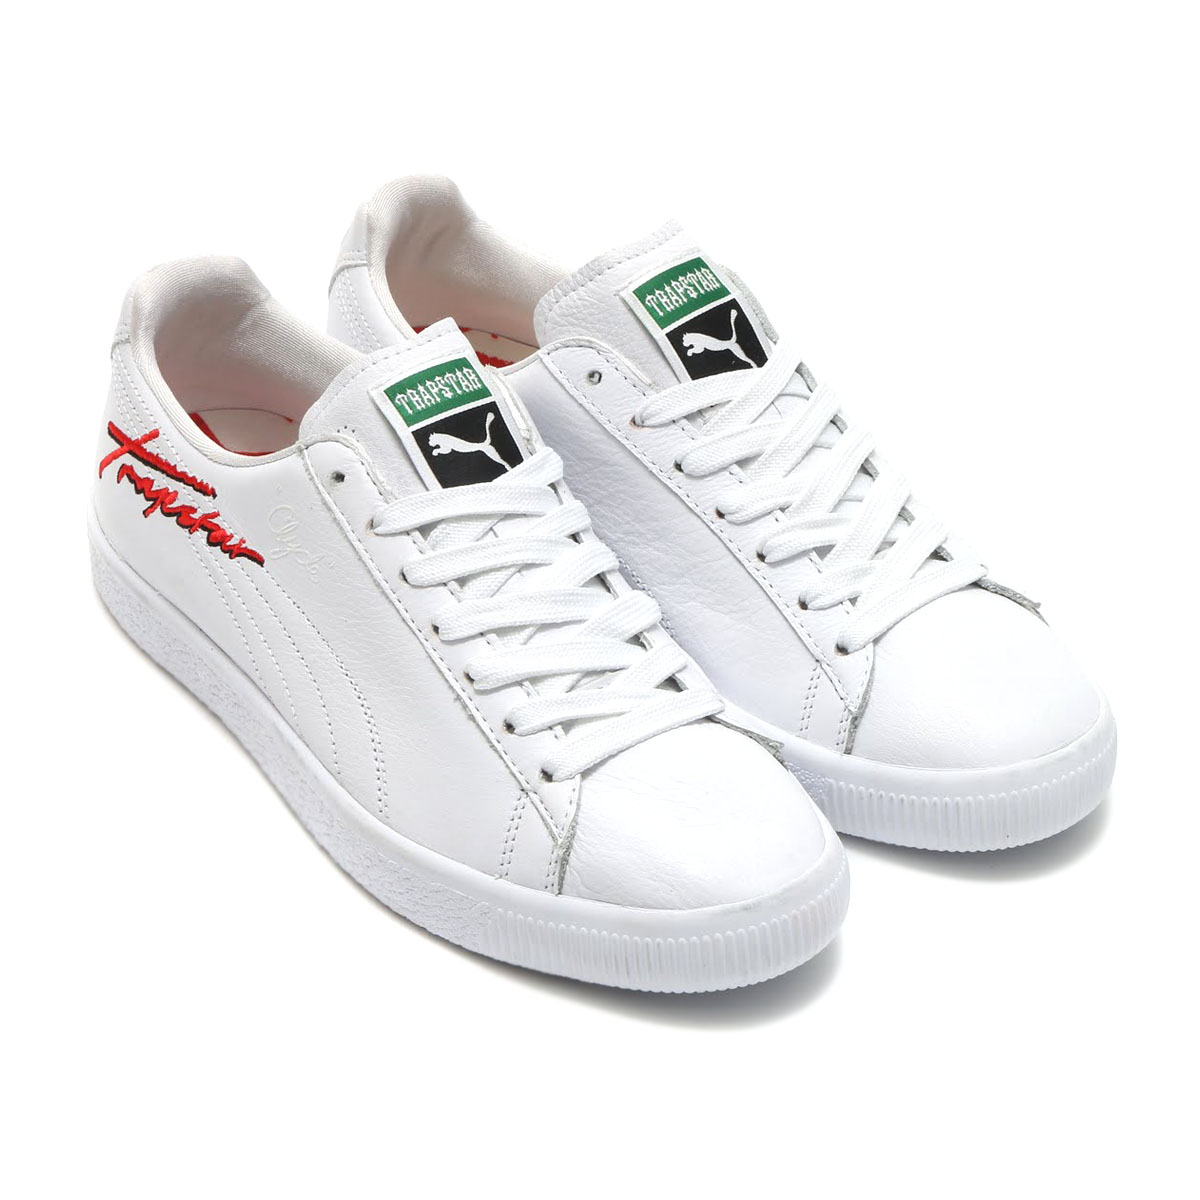 1eacc2ebe9e1 Collaboration Style with TRAPSTAR using CLYDE which is ICON of PUMA. I  express the LOGO that even the collection of